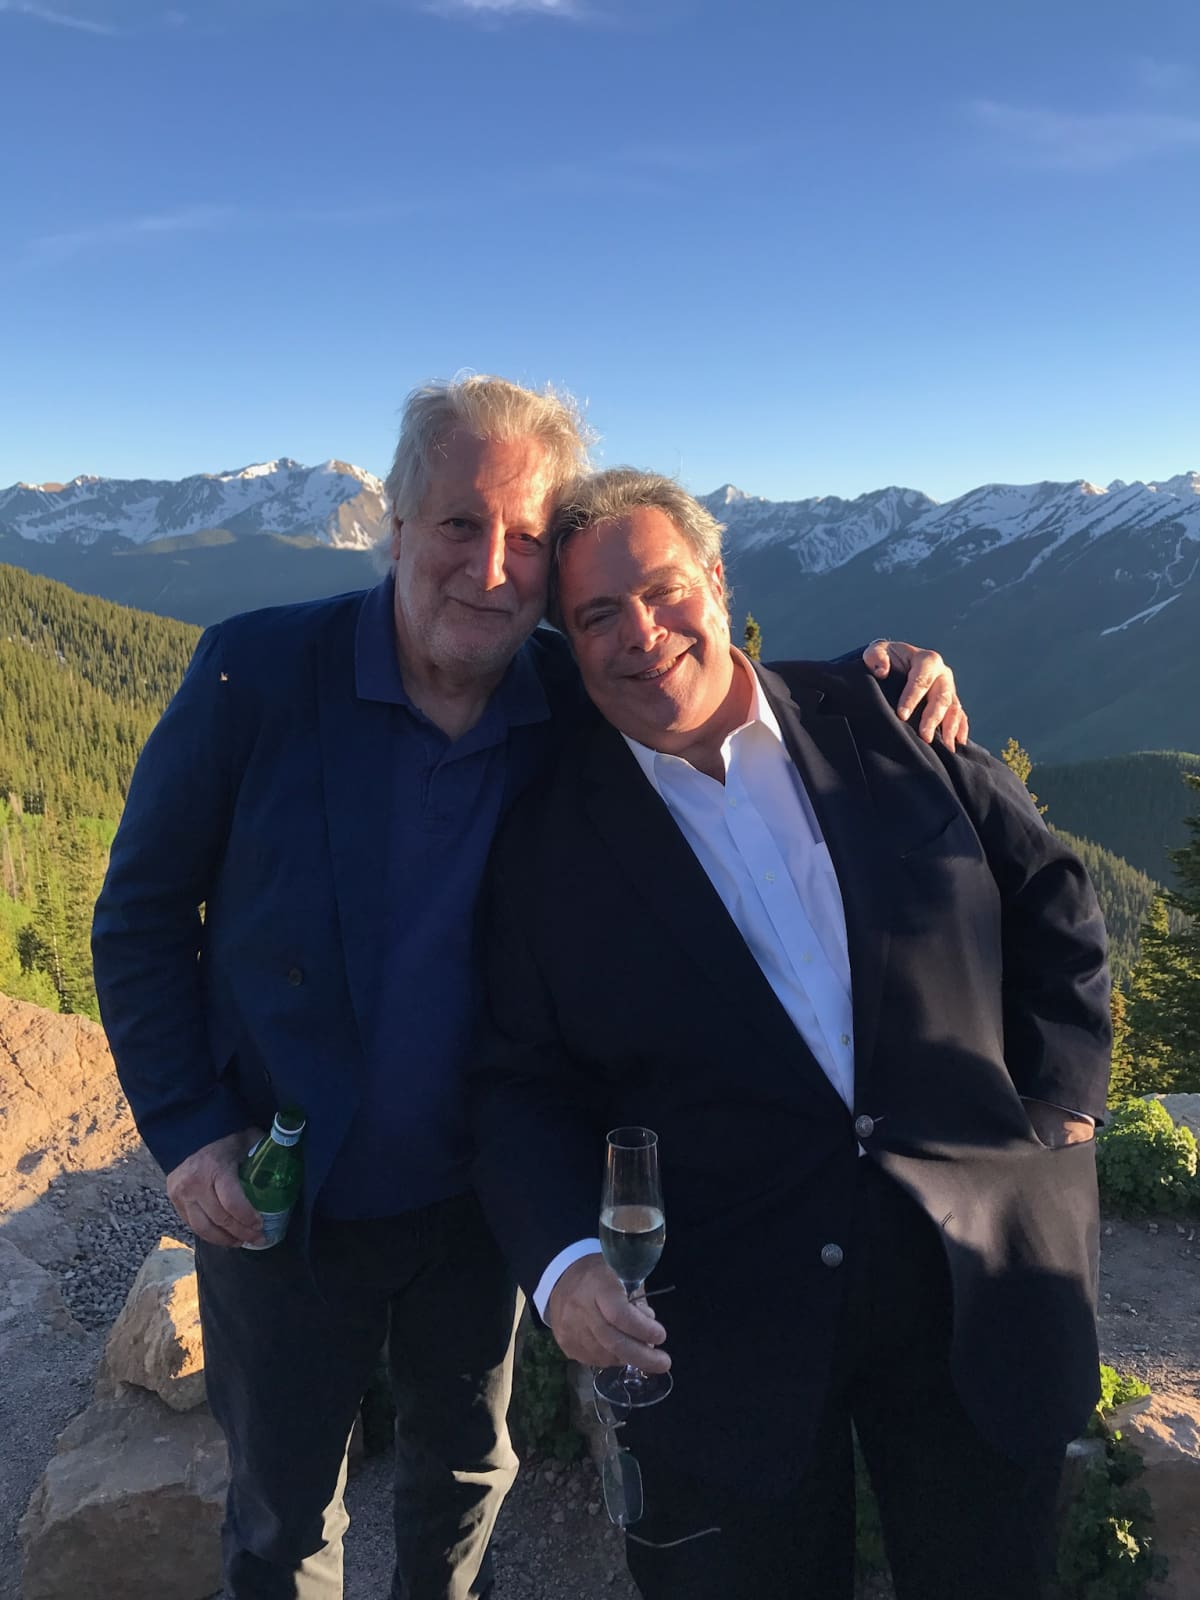 Jonathan Waxman with Drew Neiporent at Aspen Food & Wine festival